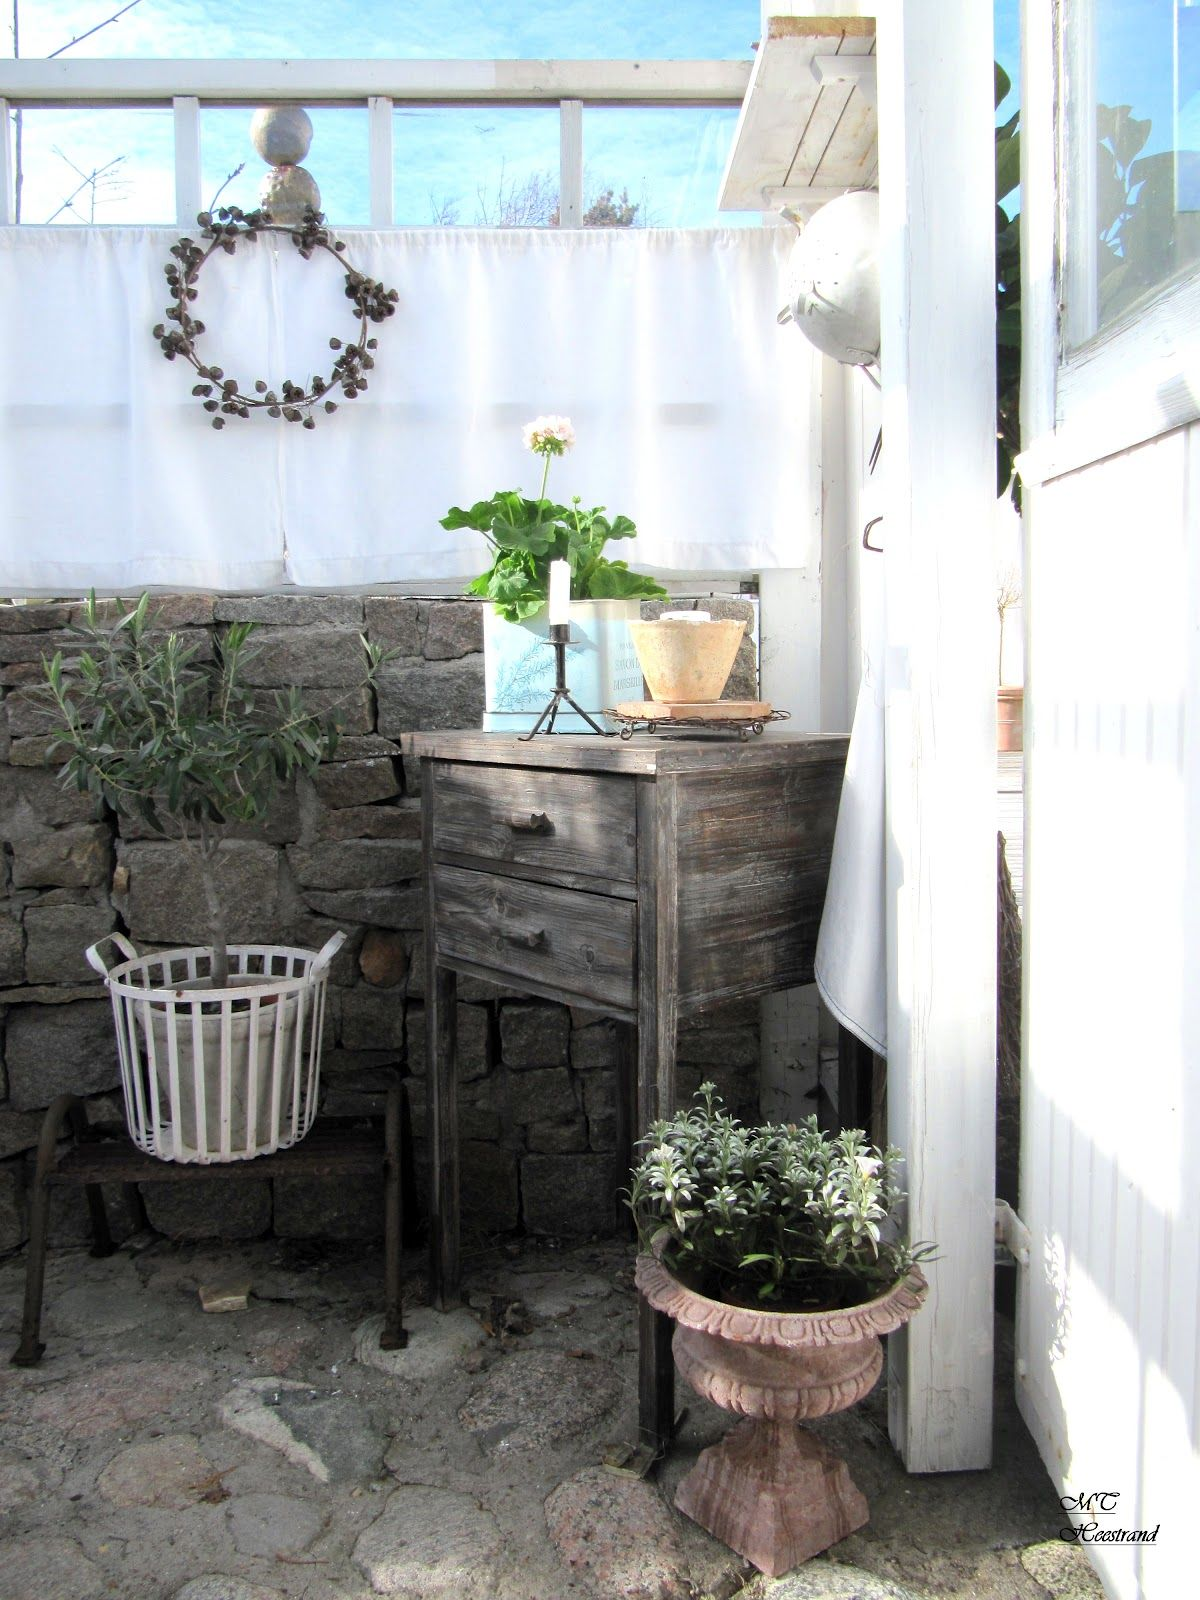 Country Living Patio Furniture Replacement Cushions: Inside Gazebo. Outside Patio Garden Whitewashed Cottage